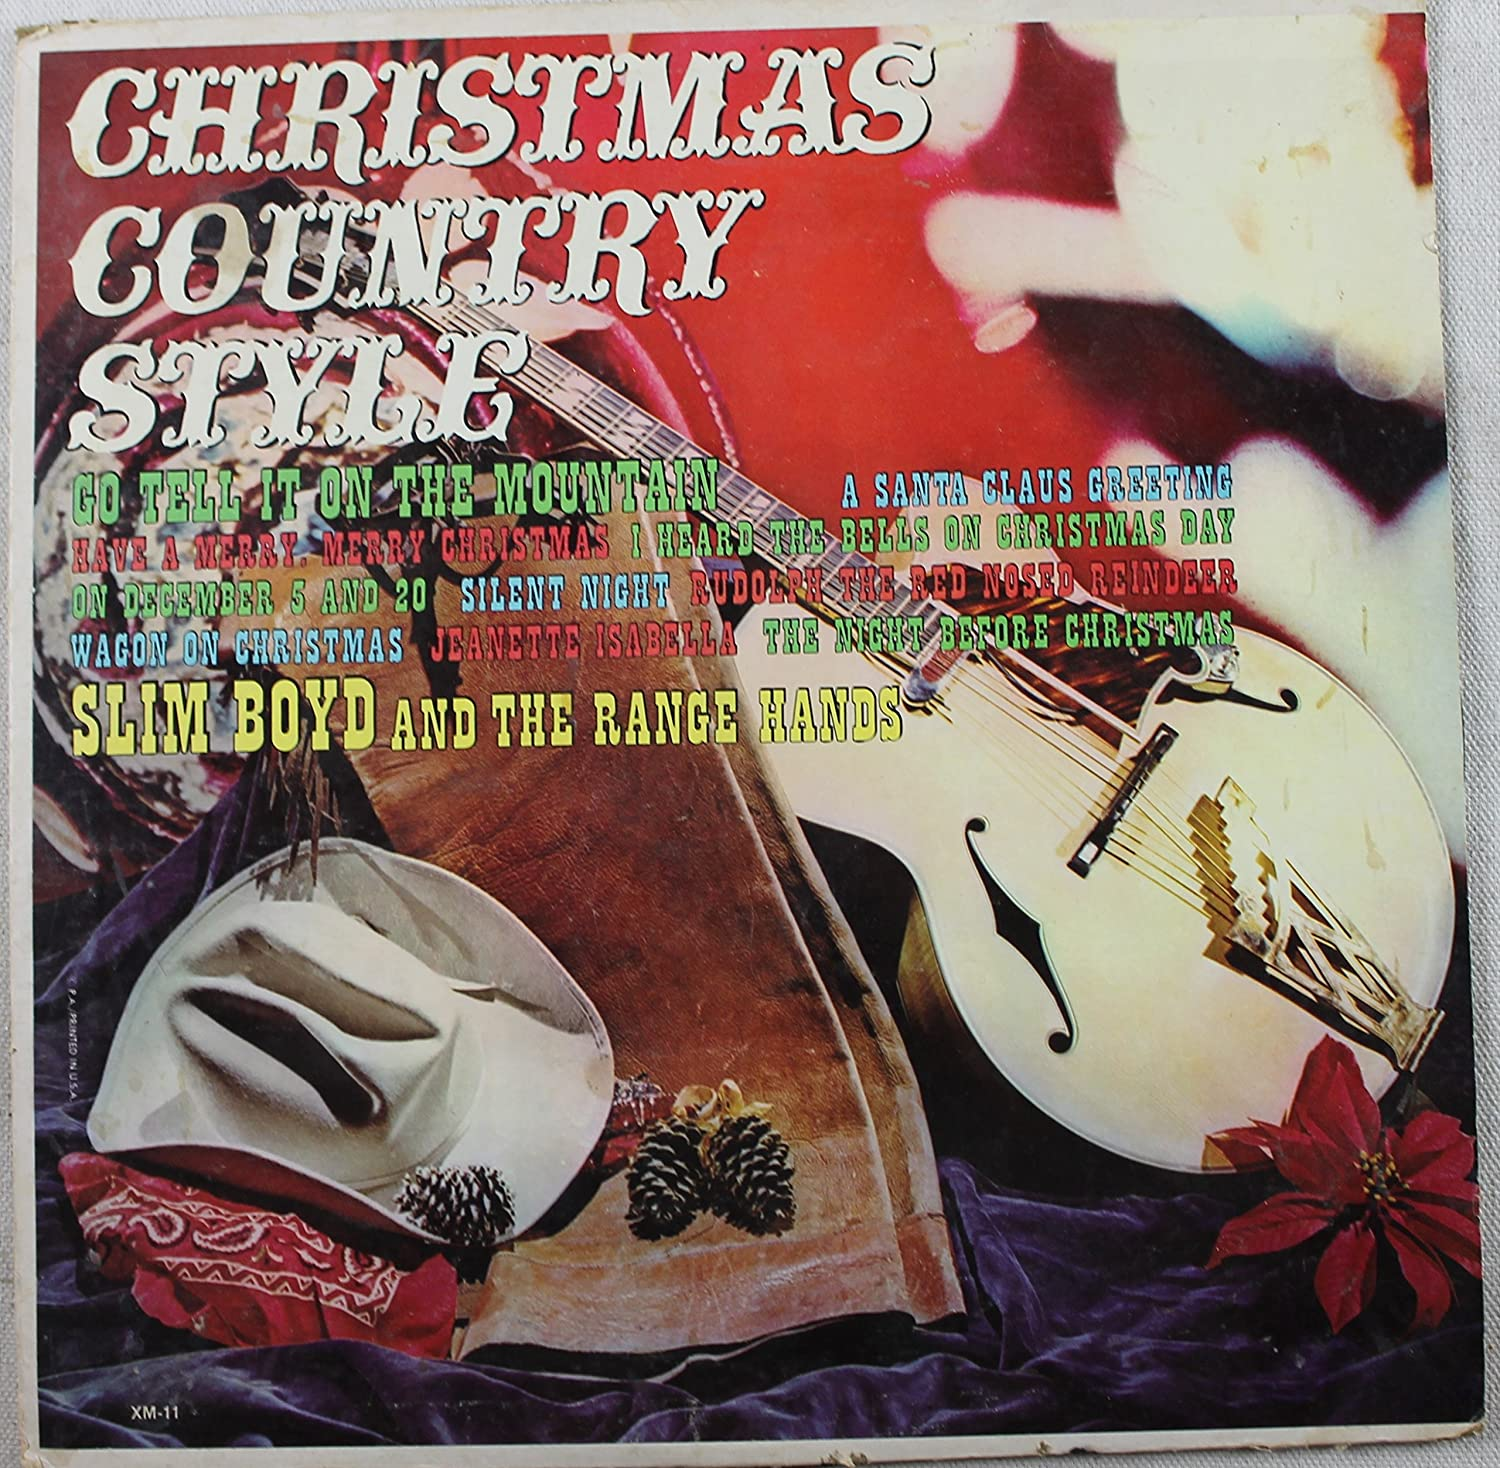 slim boyd the rangehands christmas country style amazoncom music - Xm Country Christmas